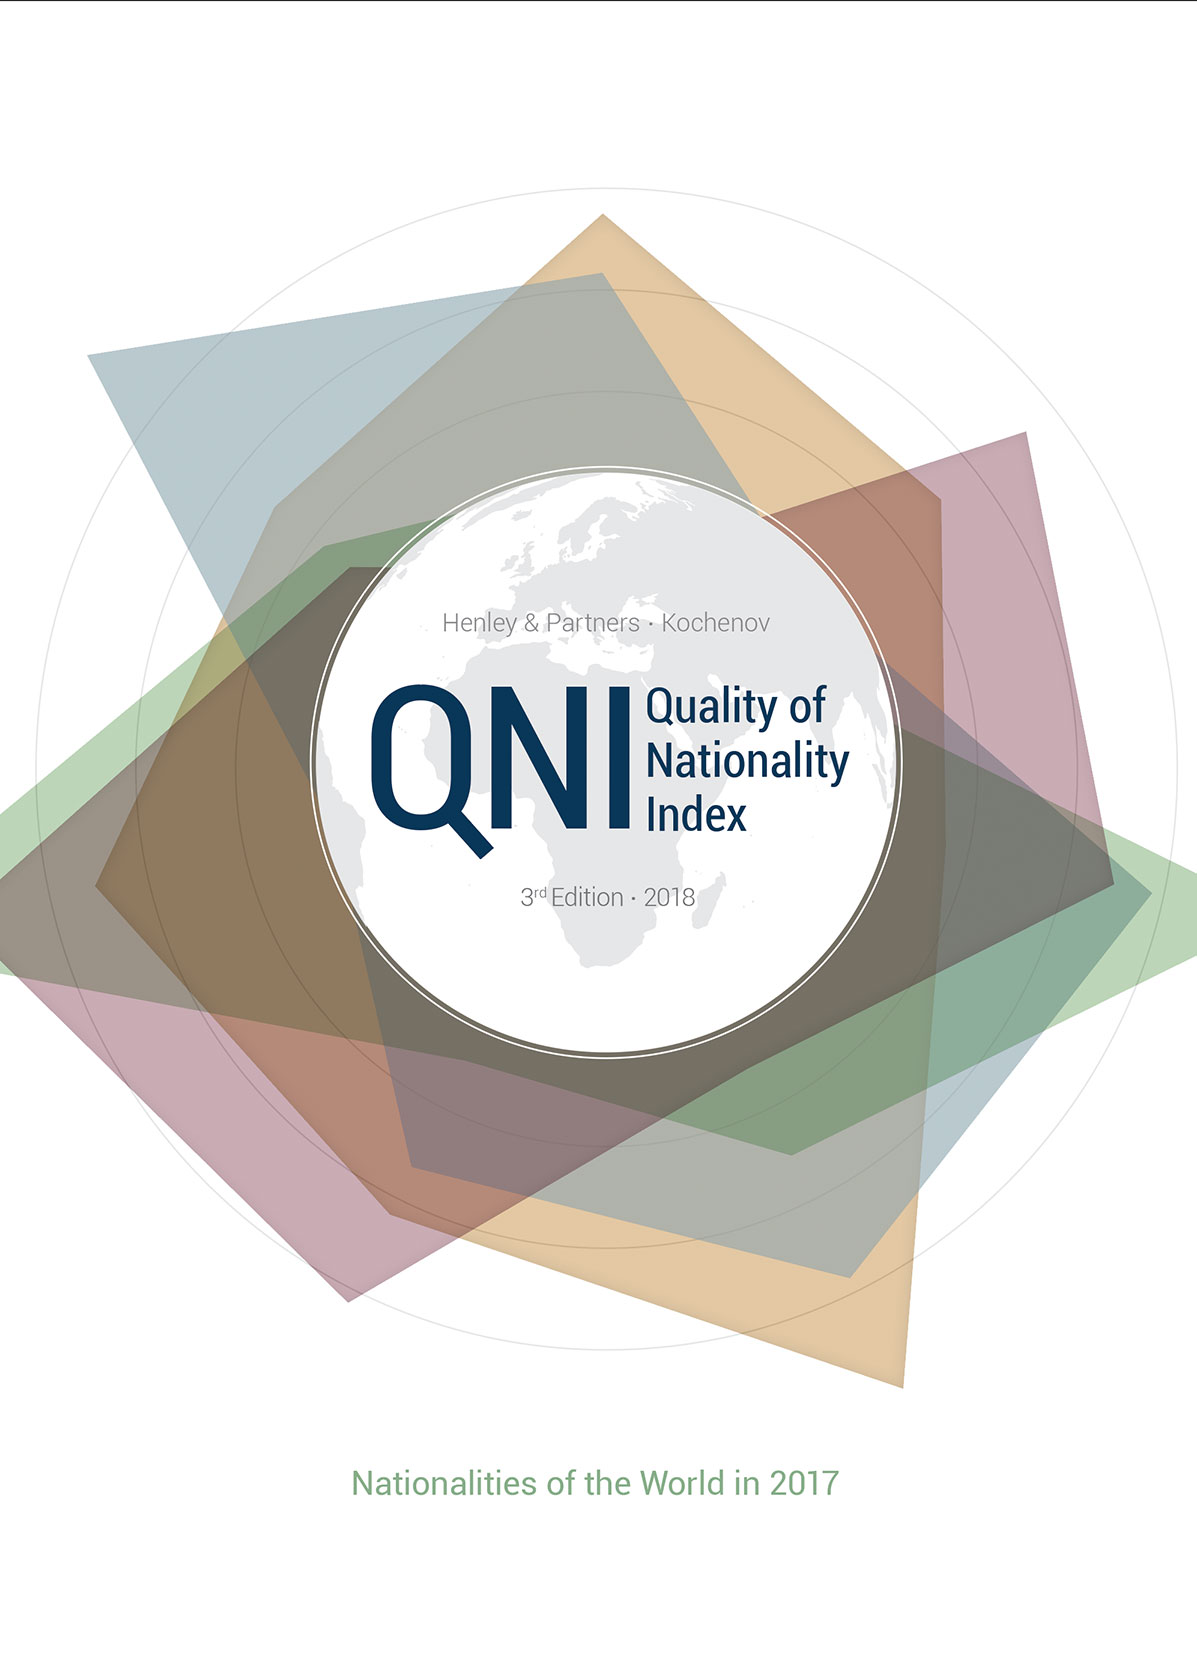 The Henley & Partners – Kochenov Quality of Nationality Index – 2nd Edition – 2016